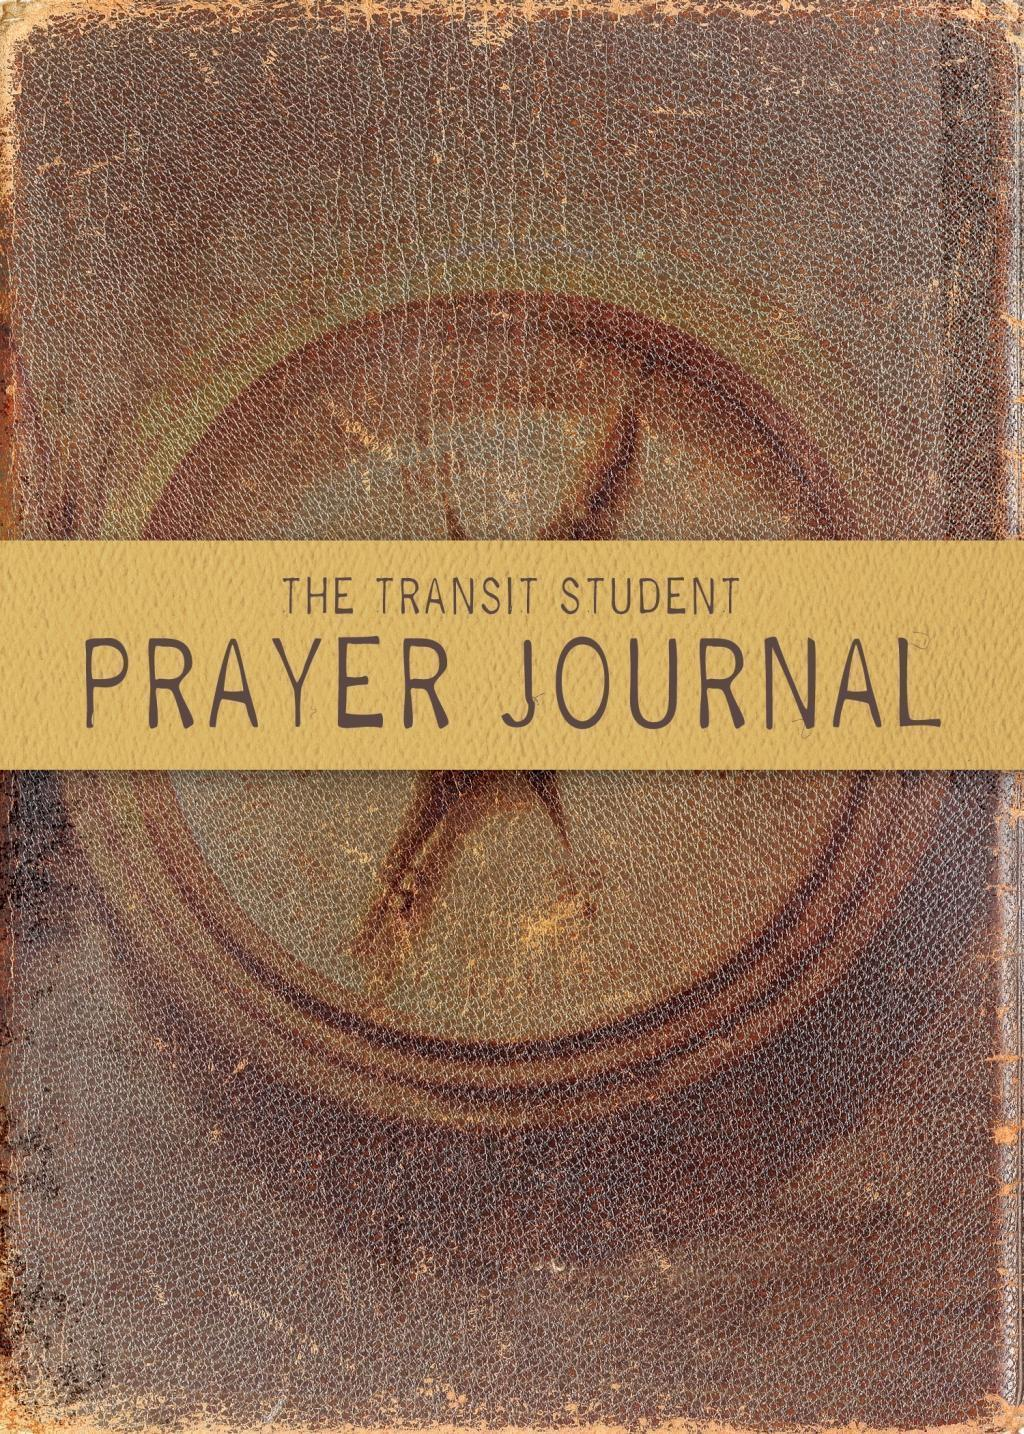 The Transit Student Prayer Journal